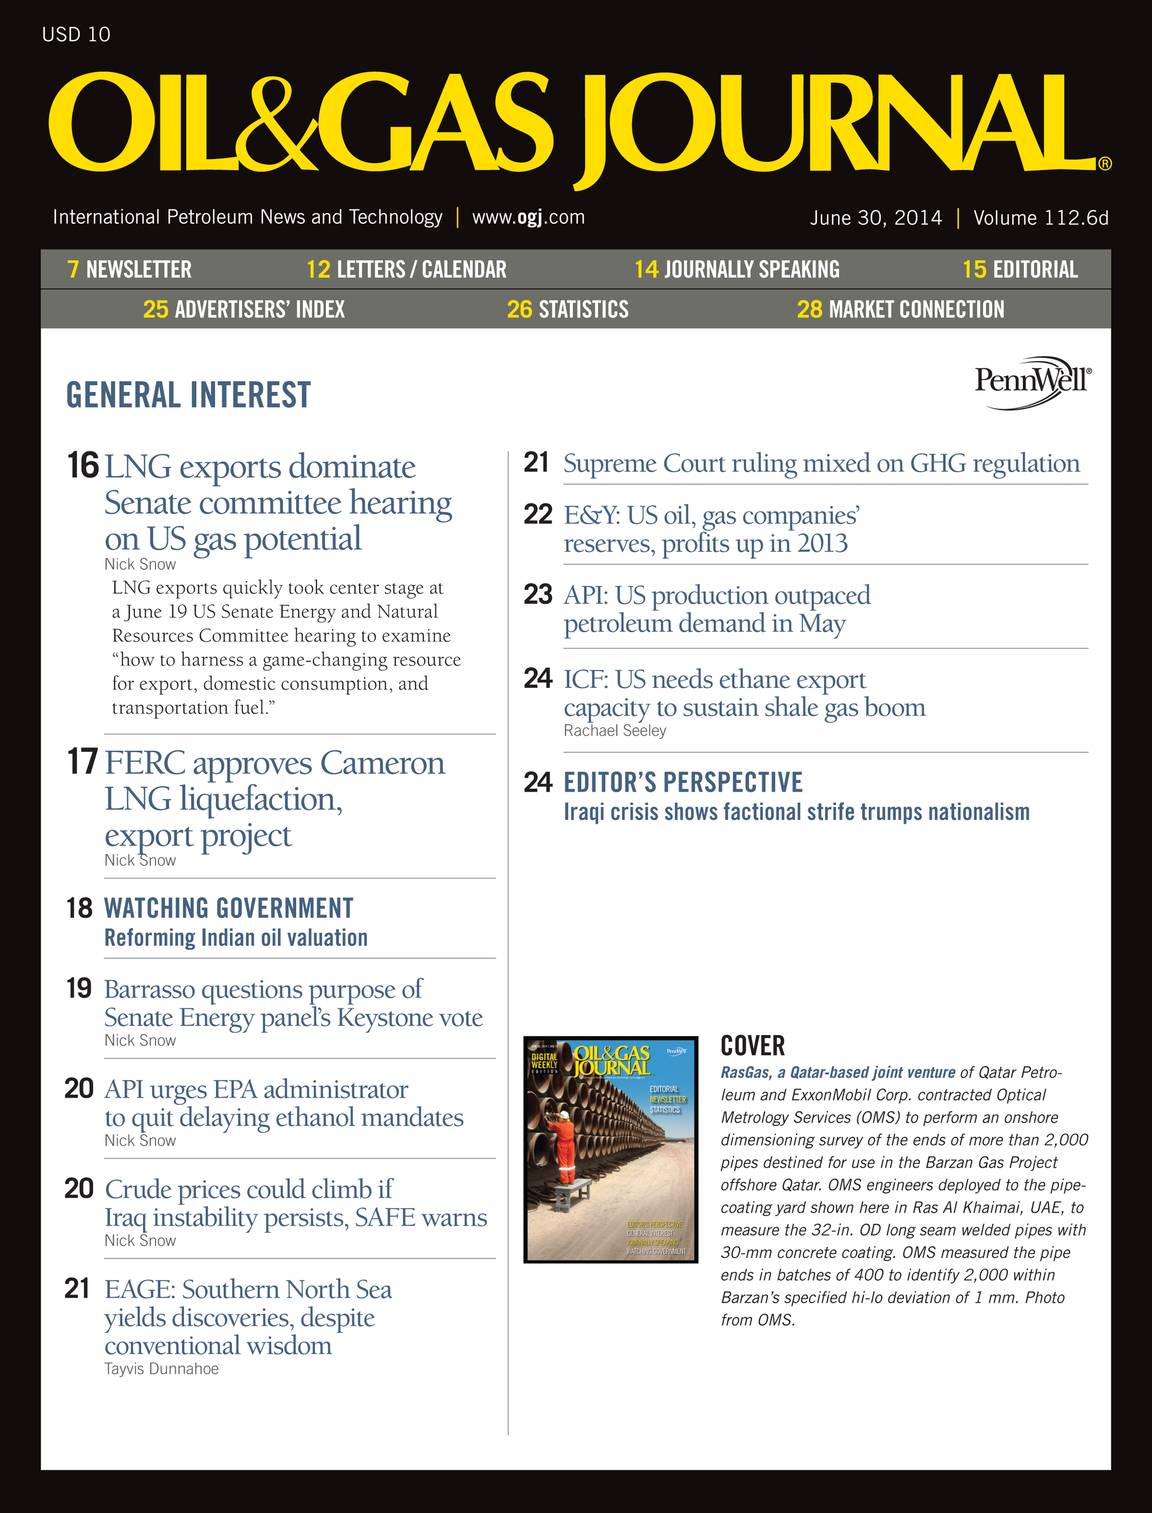 Oil & Gas Journal - June 30, 2014 - page 2